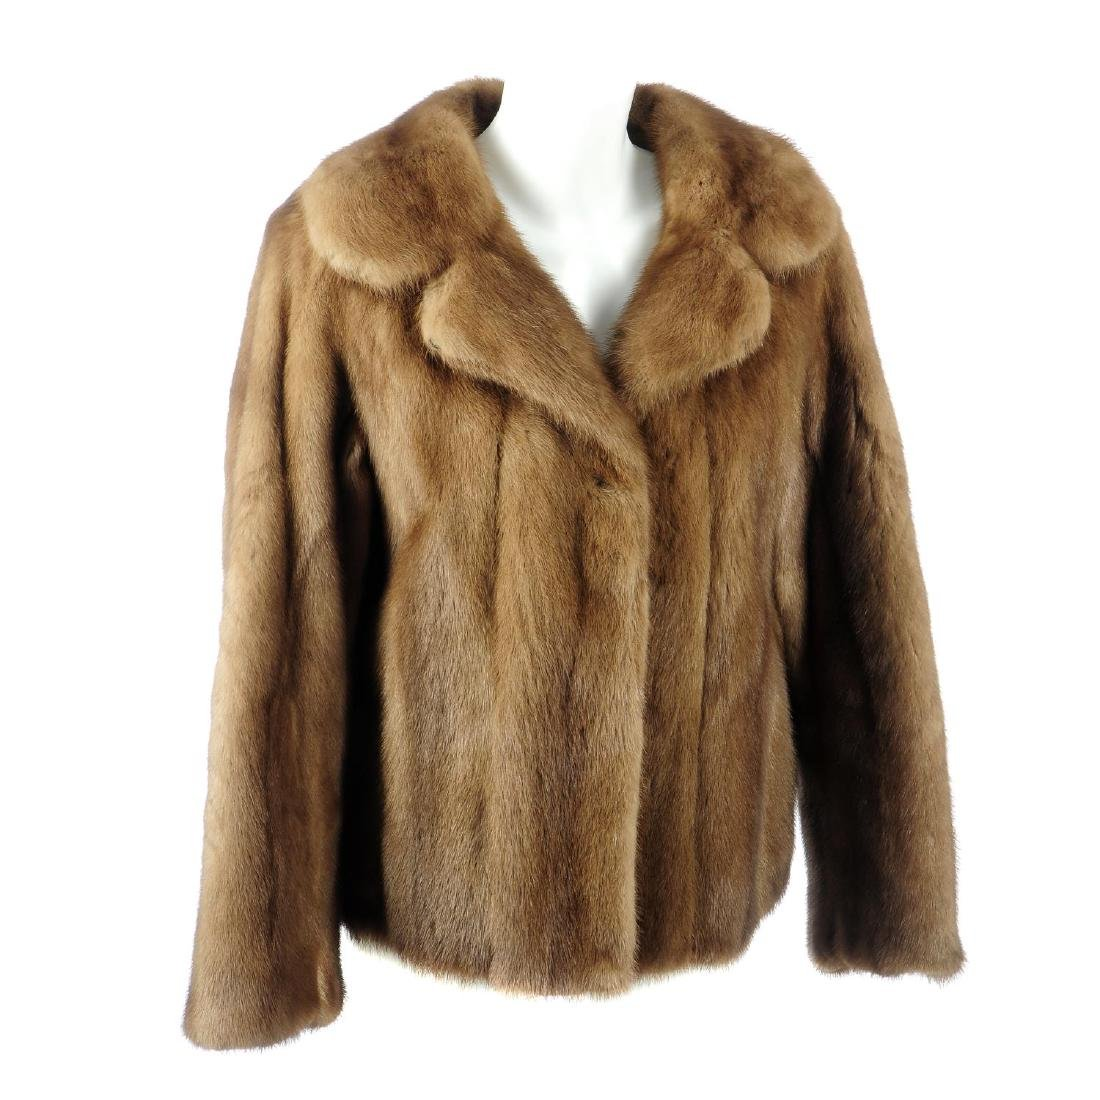 A demi buff mink jacket. Featuring a notched lapel